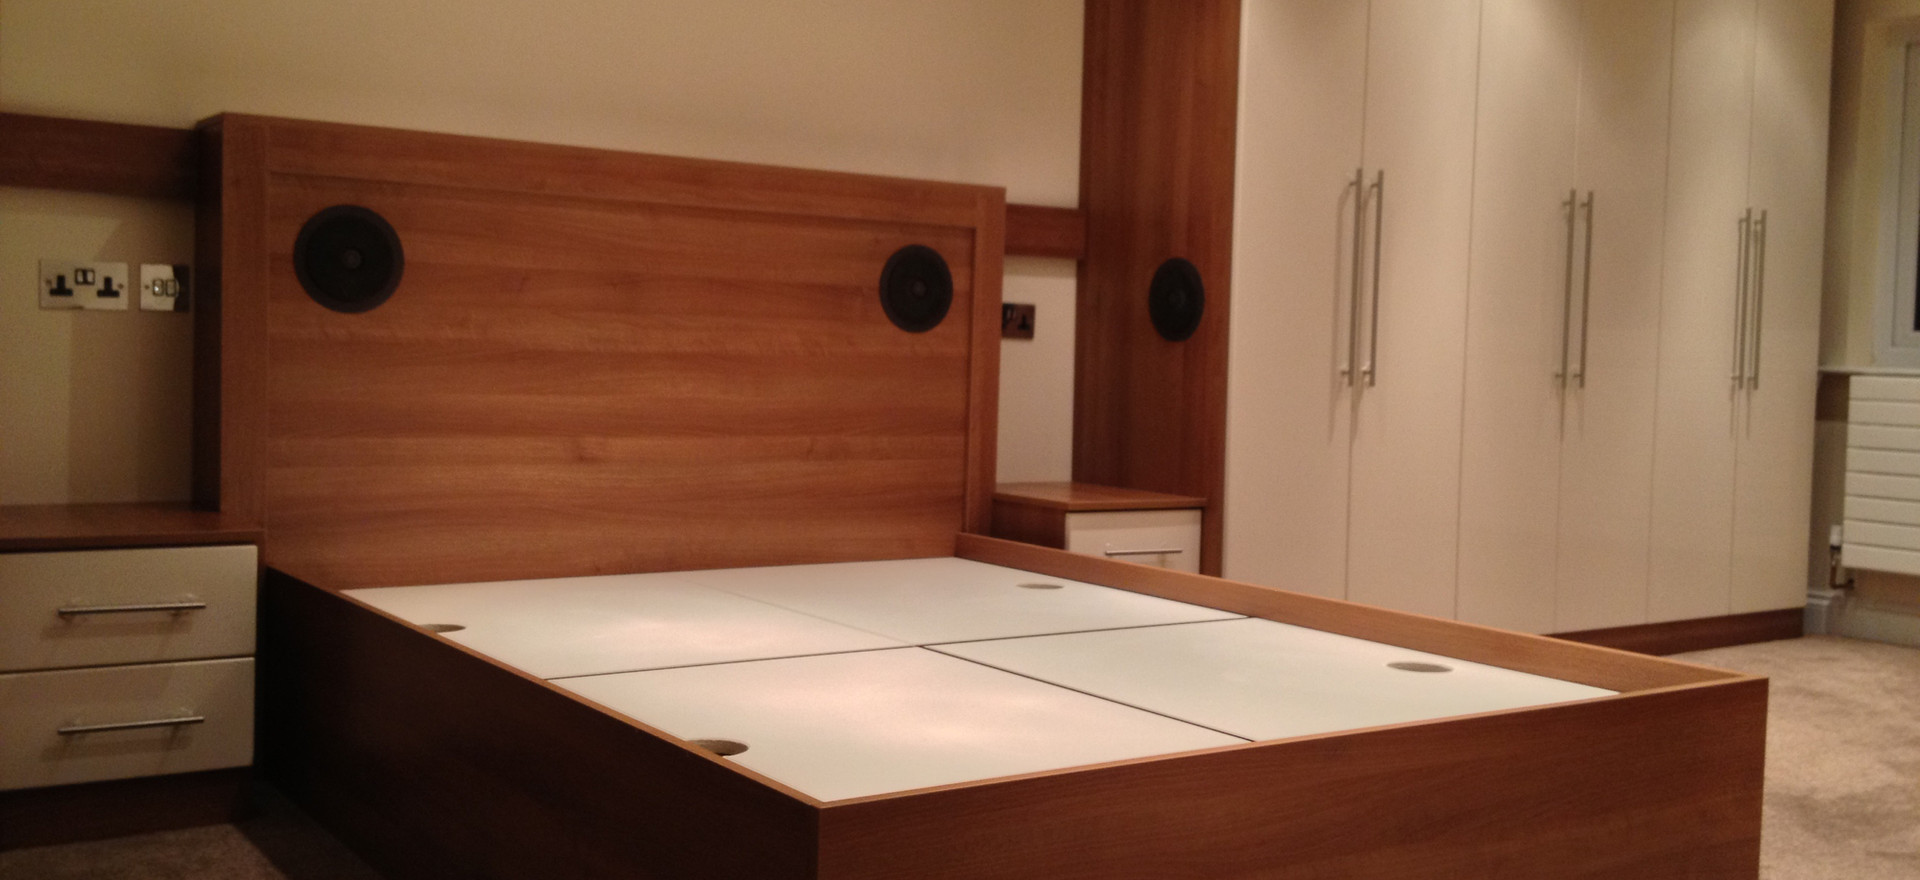 Wardrobes, Bed and Drawers